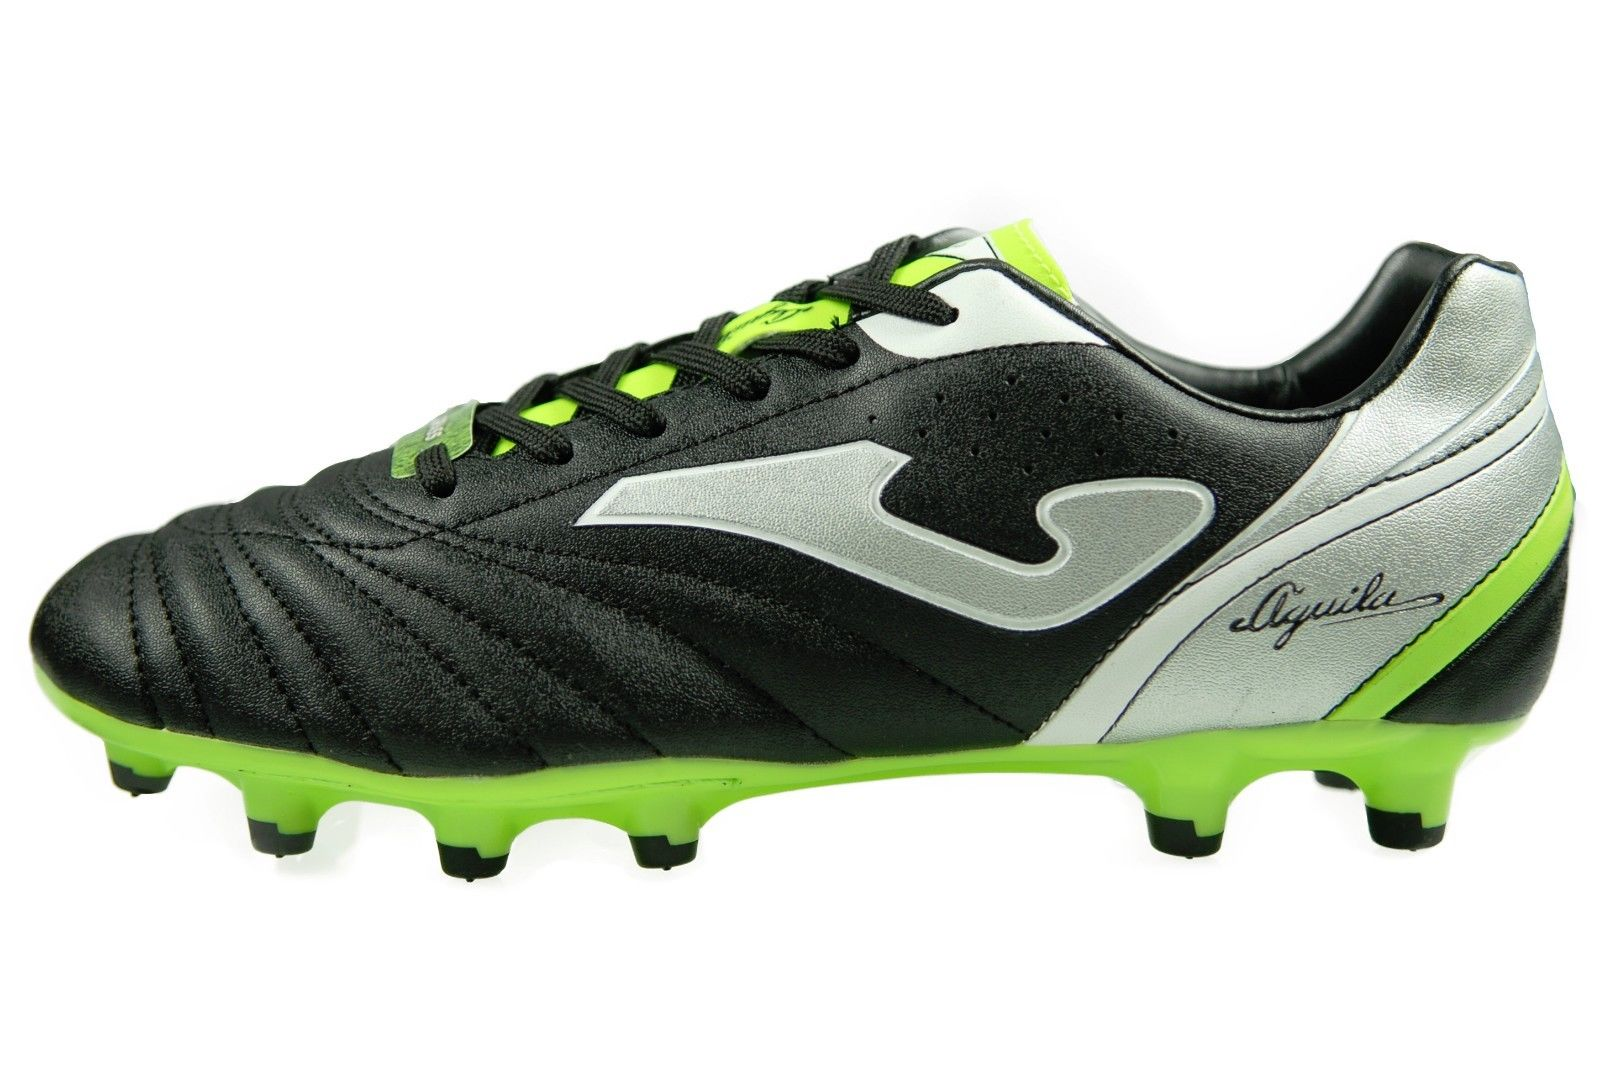 Authentic Joma Firm Ground Soccer Cleats Color Black Aguila 601